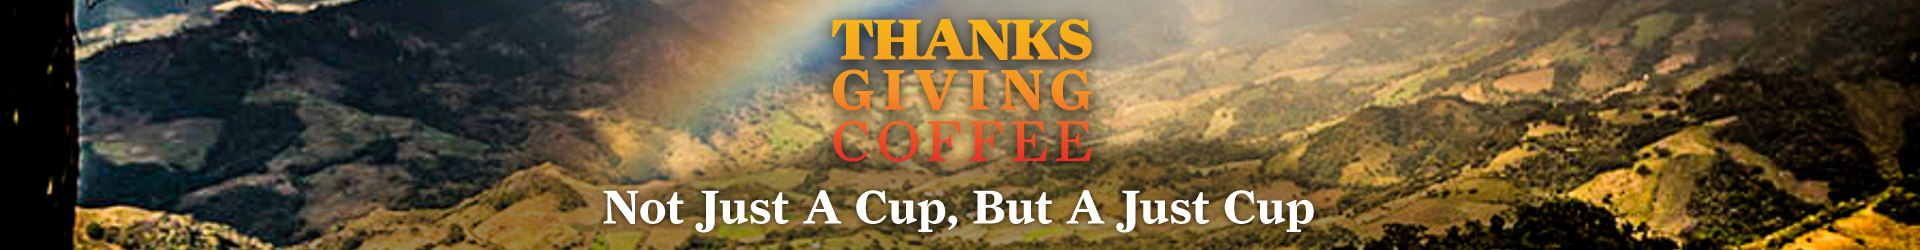 Thanks Giving Coffee.  Not just a cup, but a just cup.